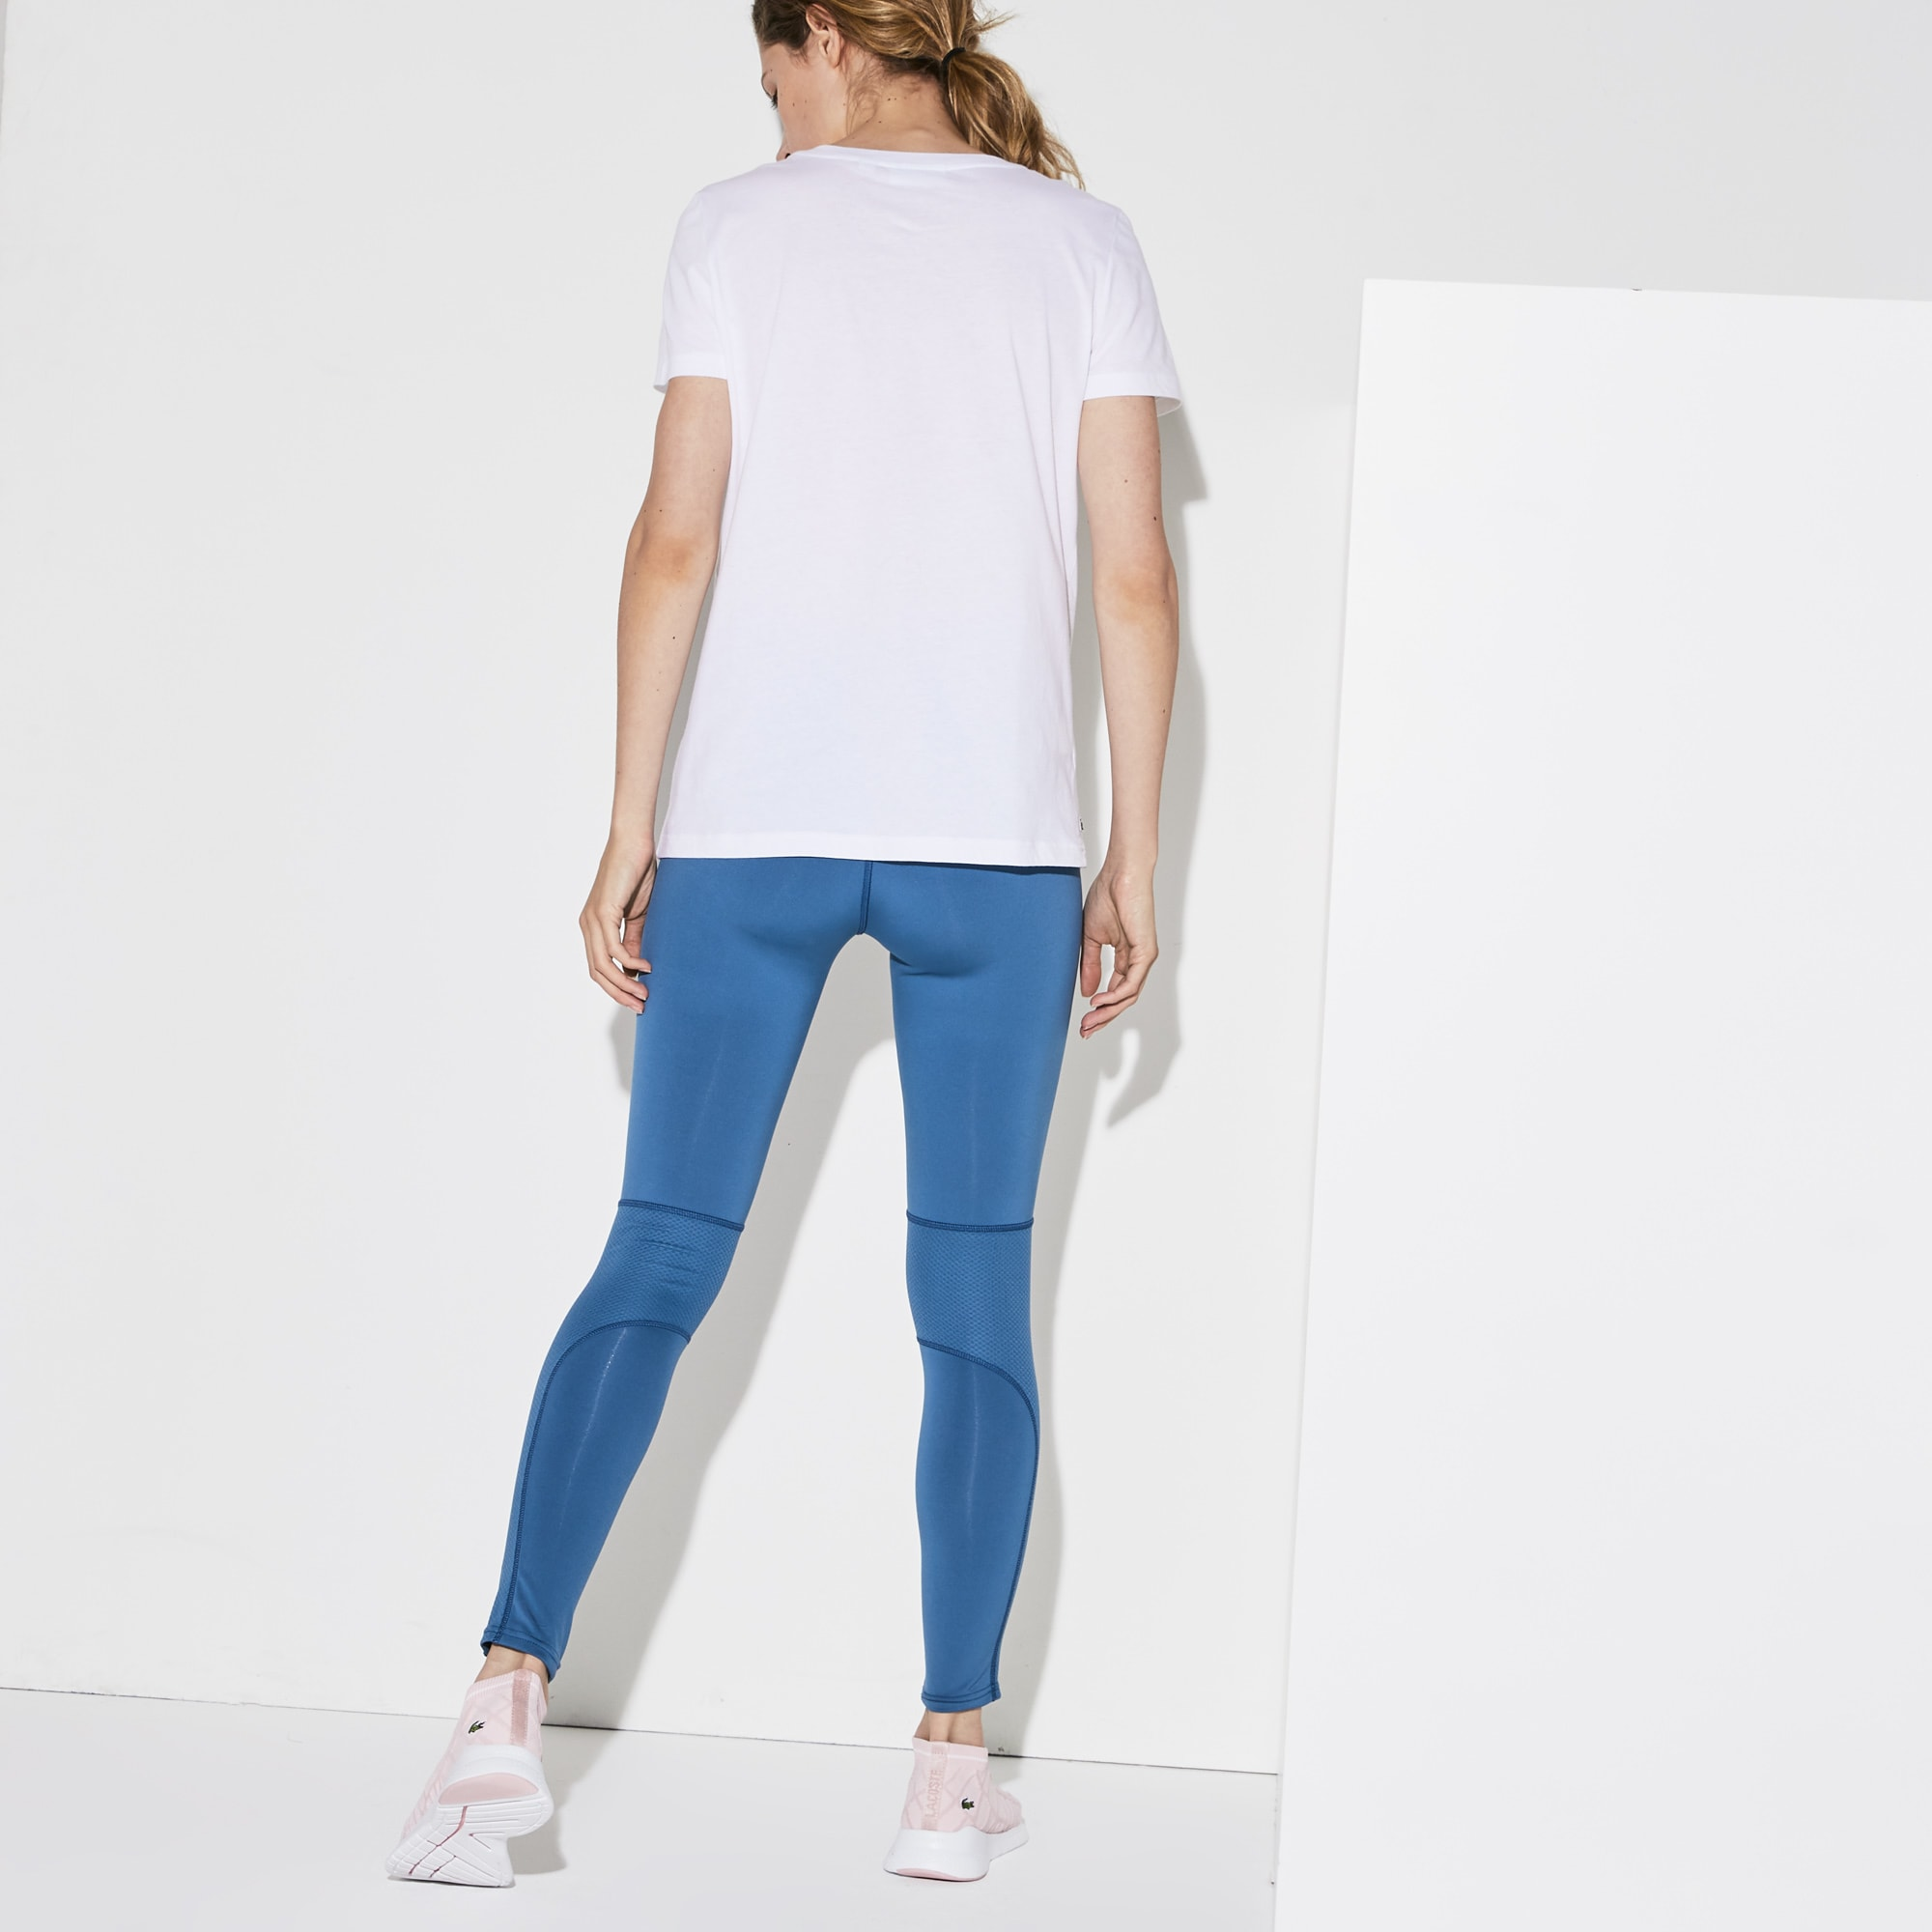 Women's Lacoste SPORT Stretch Jersey Tech Tennis Leggings